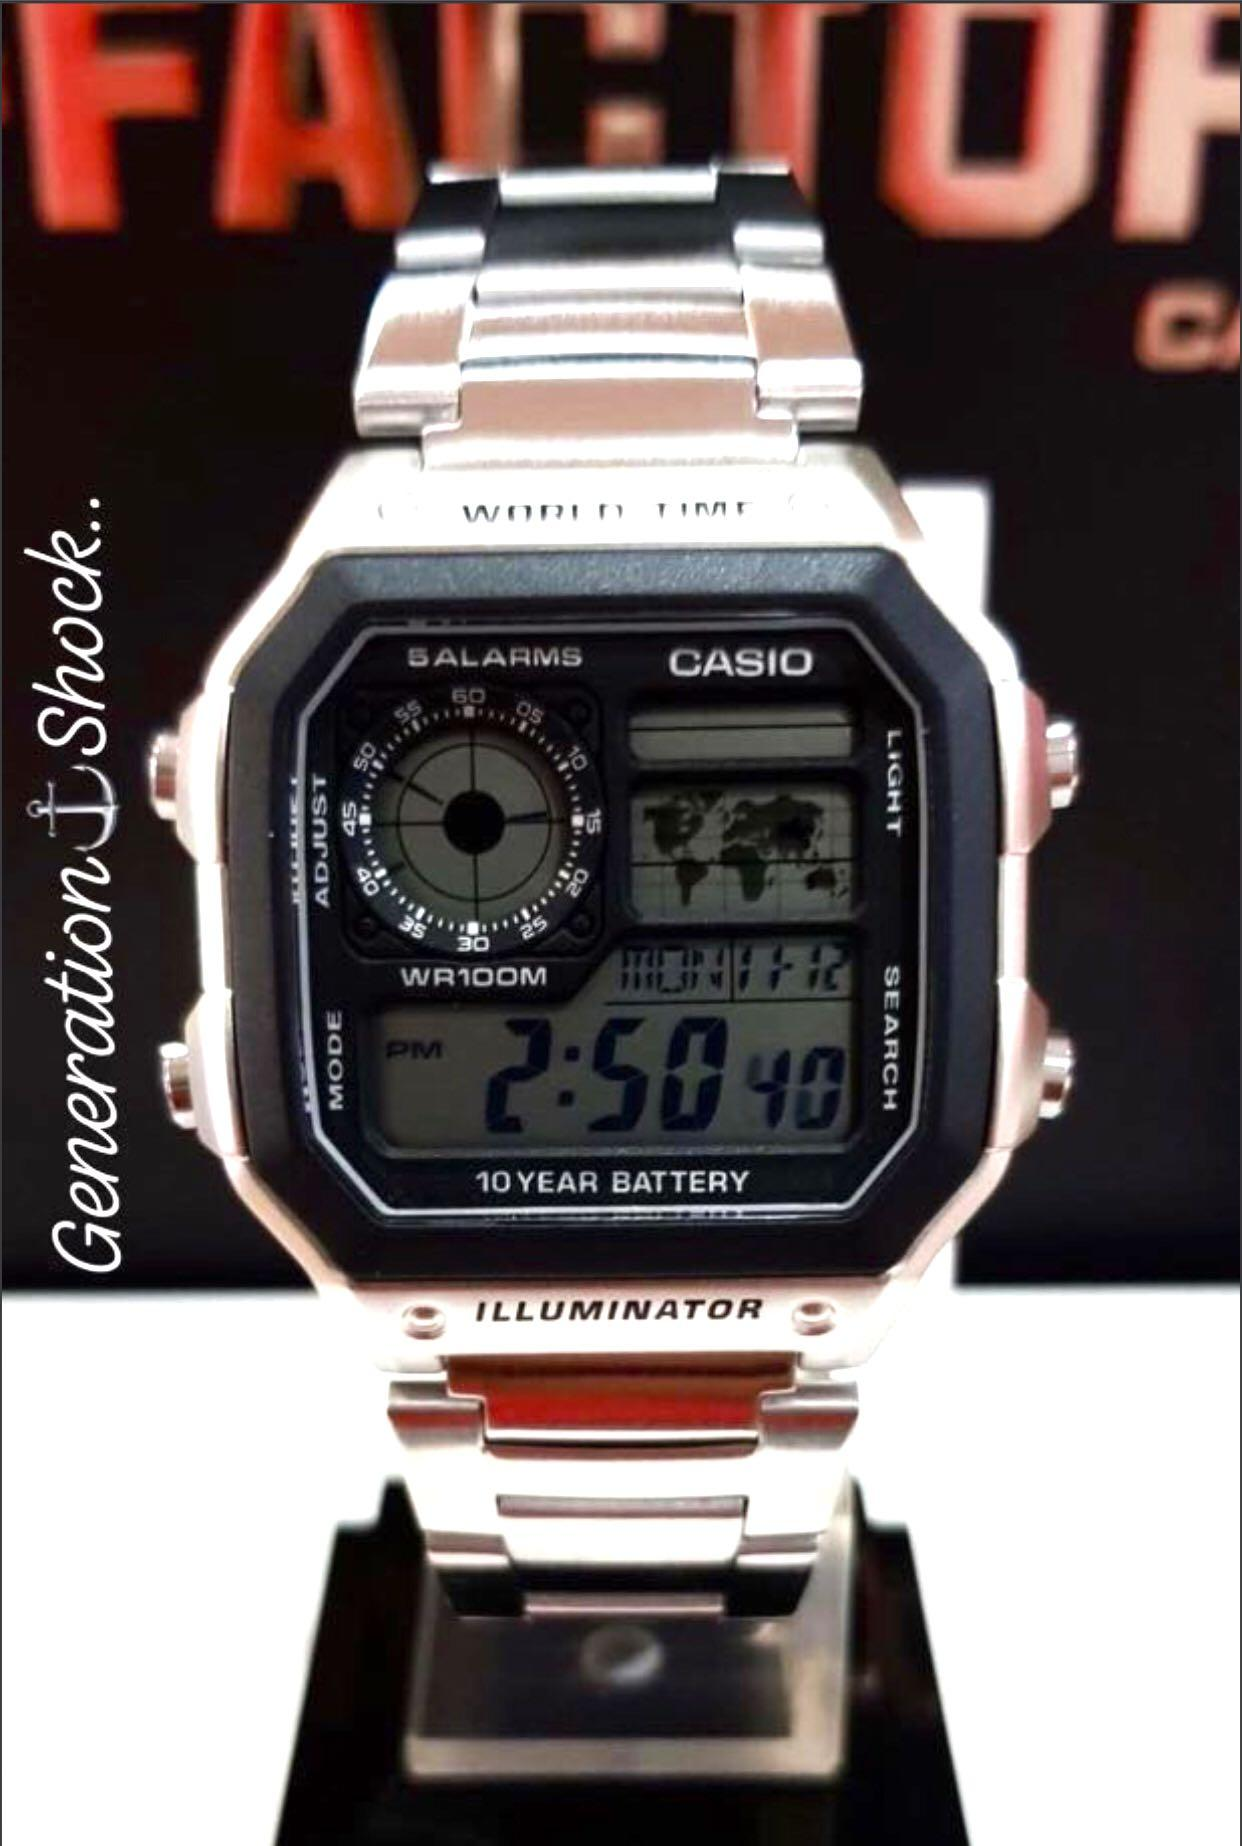 NEW🌟CASIO AVIATORS UNISEX DIVER SPORTS WATCH : 100% ORIGINAL AUTHENTIC : By BABY-G-SHOCK Company : AE-1200WHD-1A / Designed By GSHOCK: DW-5600-1 series